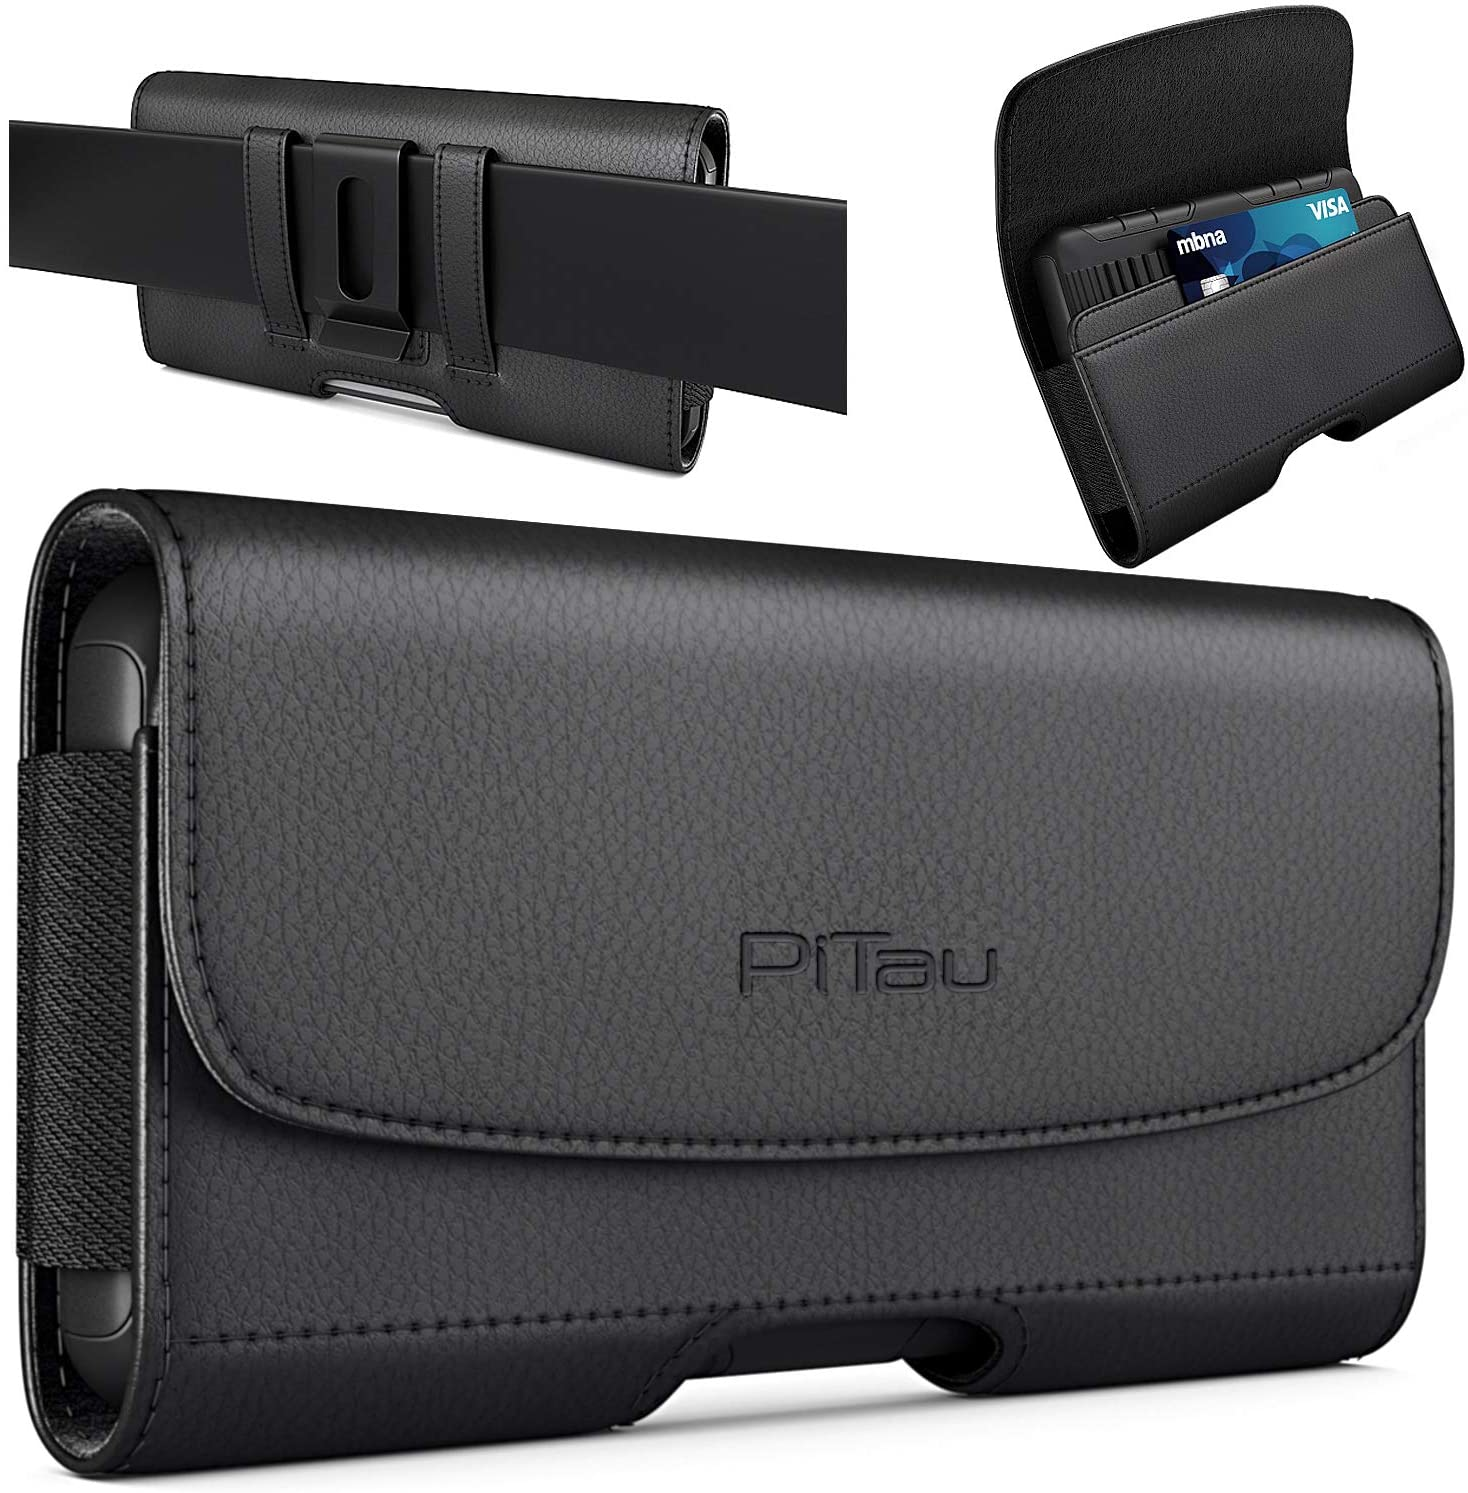 PiTau Phone Holster Designed for Samsung Galaxy S21+ Plus, Galaxy Note 10+ Belt Case with Belt Clip Belt Loops Fits Samsung Galaxy S21+ S20+ Plus/Note 10 Plus/Note 8 9 20 with Other Case On - Black